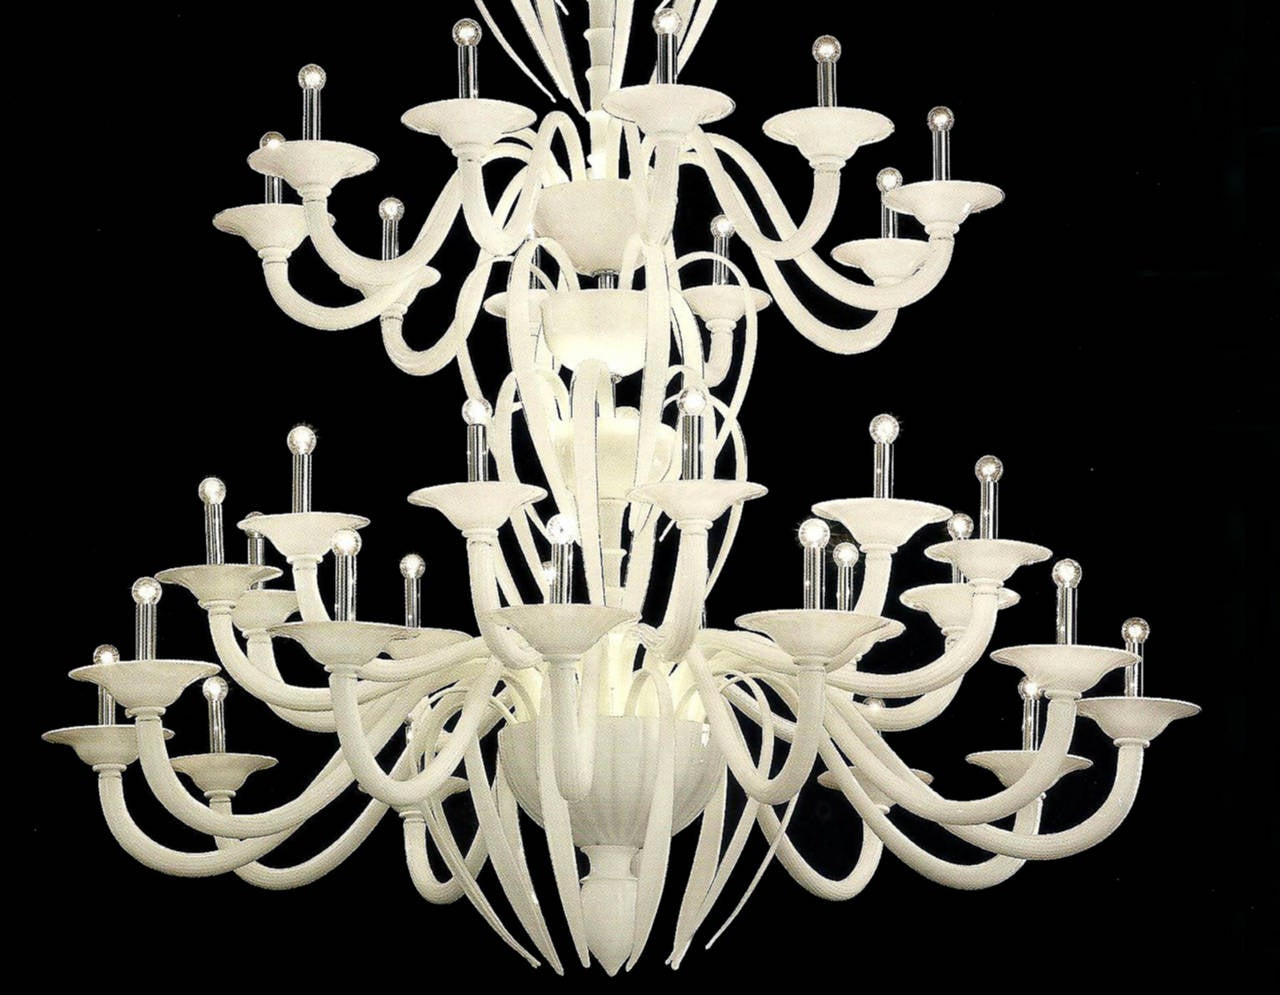 20th Century Monumental Mid-Century Modern Neoclassic White Murano /Venetian Glass Chandelier For Sale